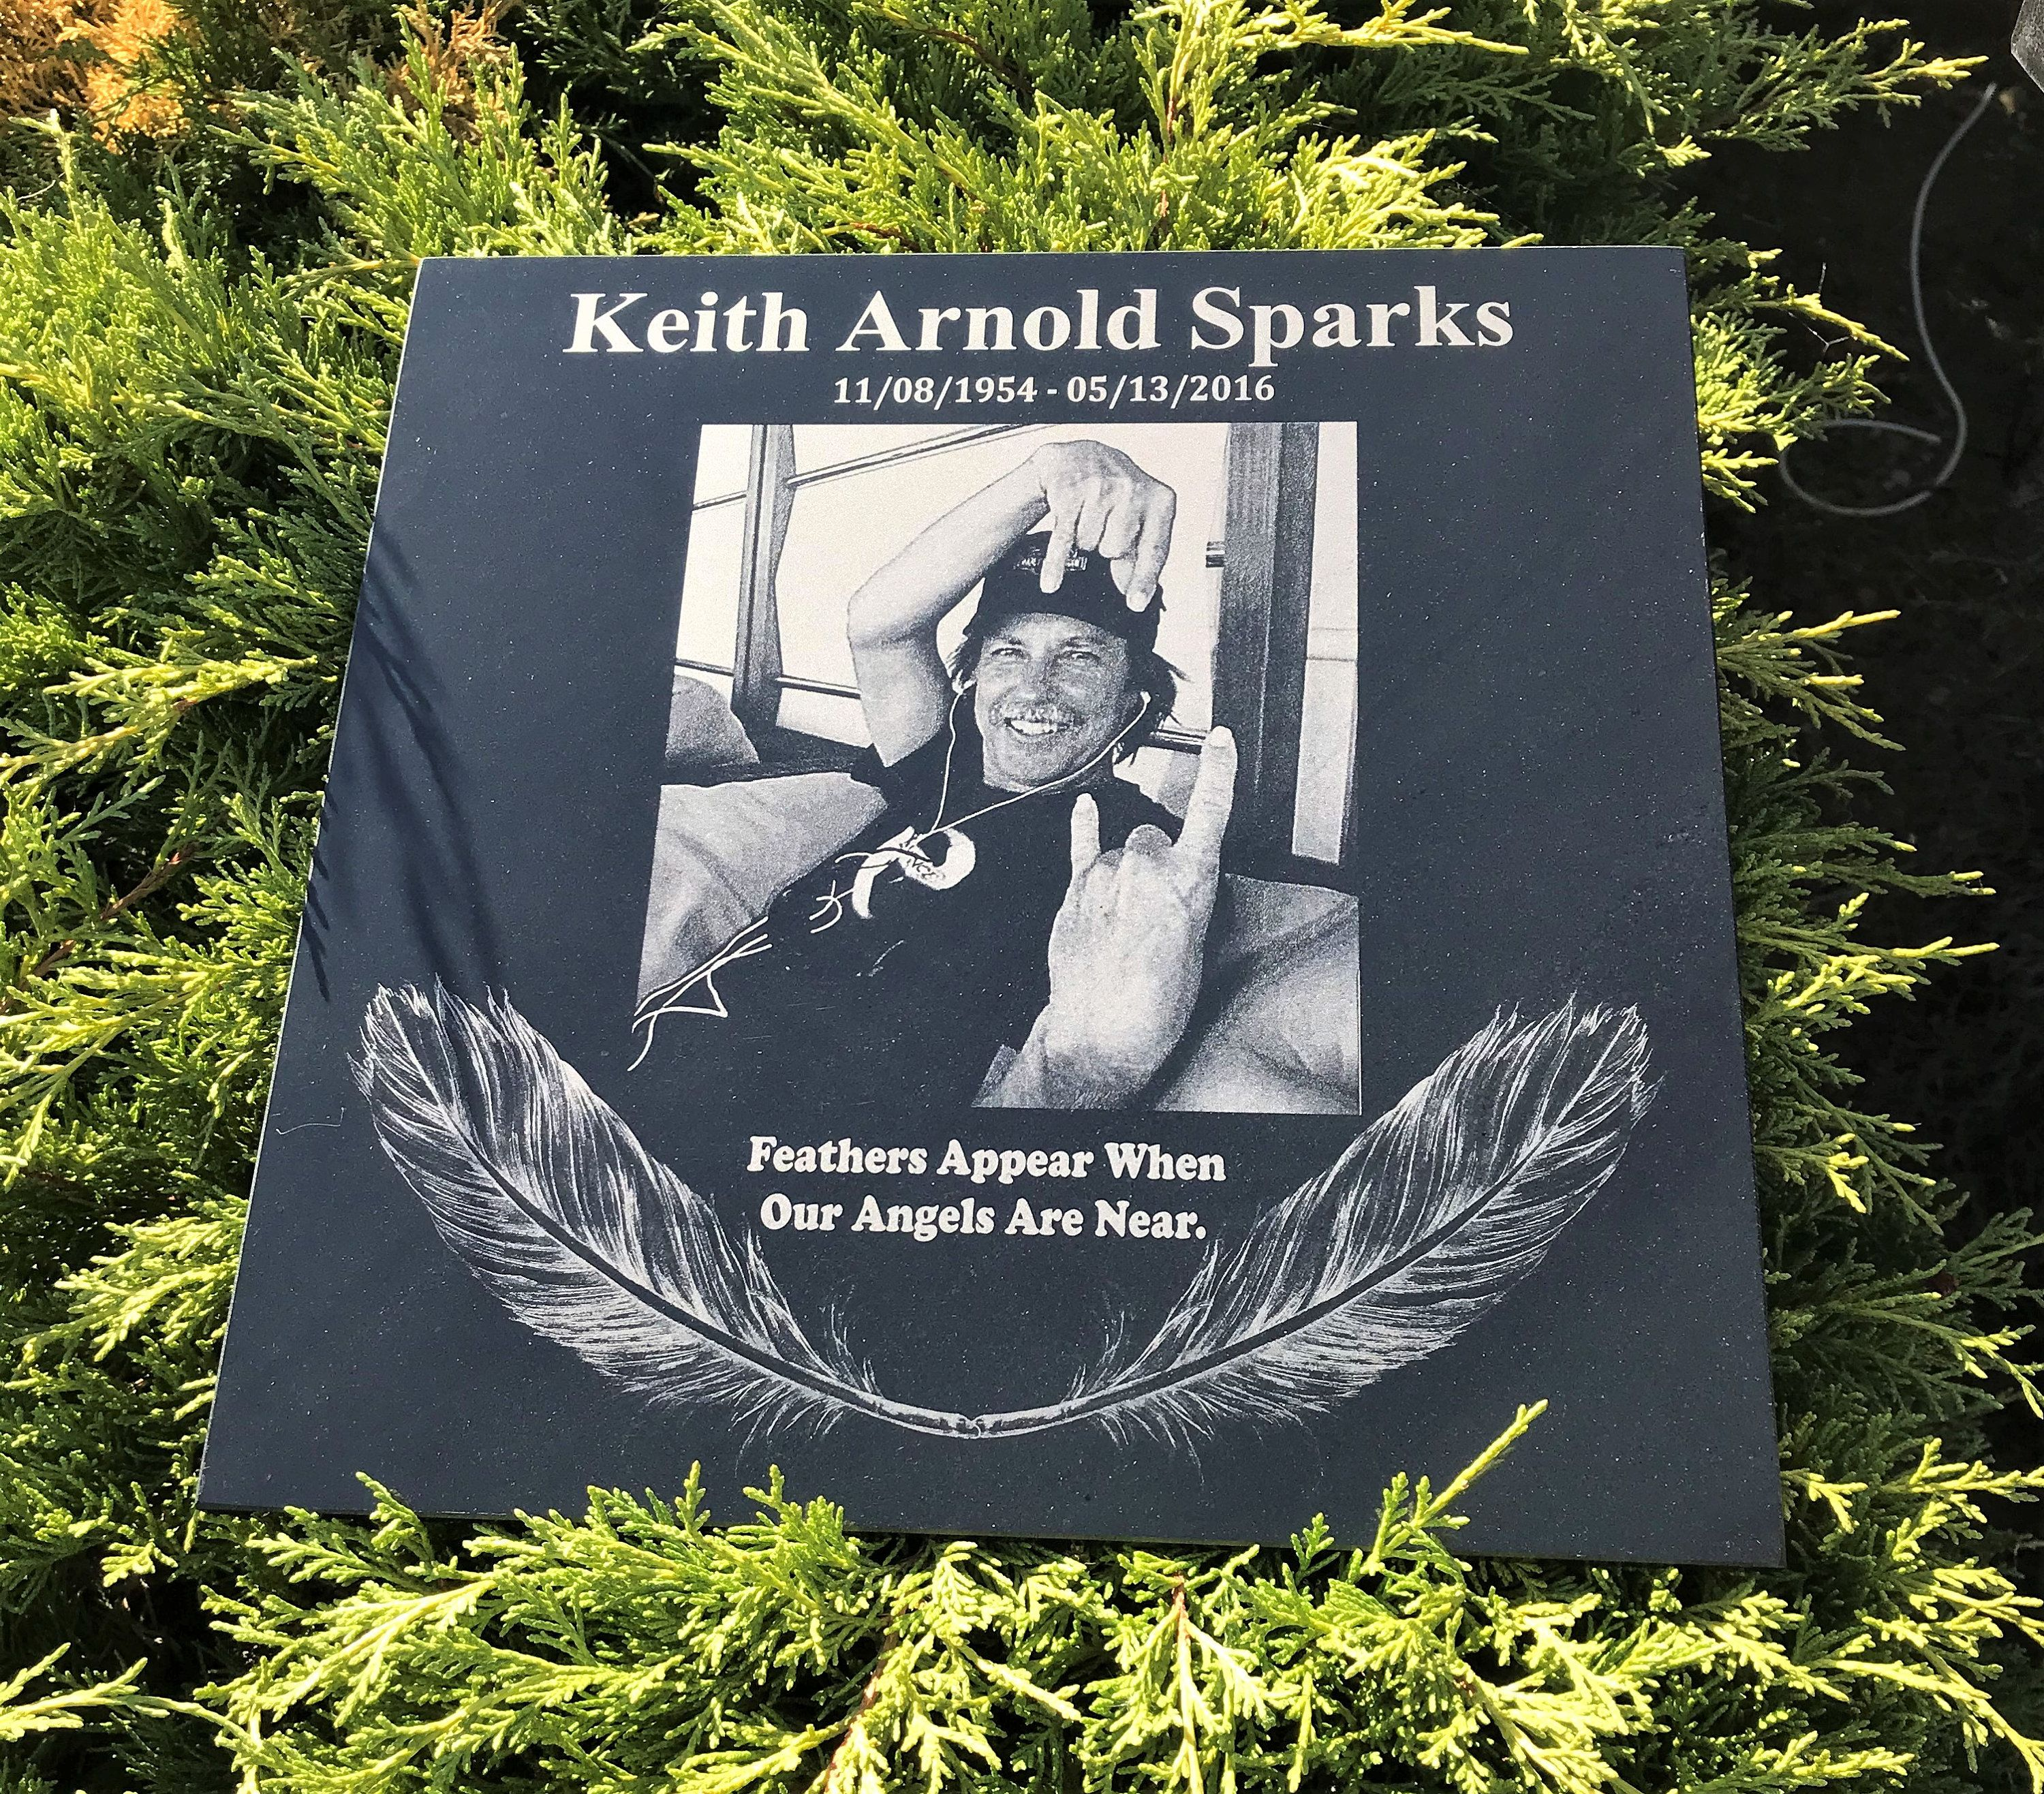 Personalized Memorial Custom Designs Engraved On Stone Legacy Memorials Engraved On Stone Photos Etched On Granite Memorable Gifts How To Memorize Things Personalized Artwork Engraved Memorial Stone